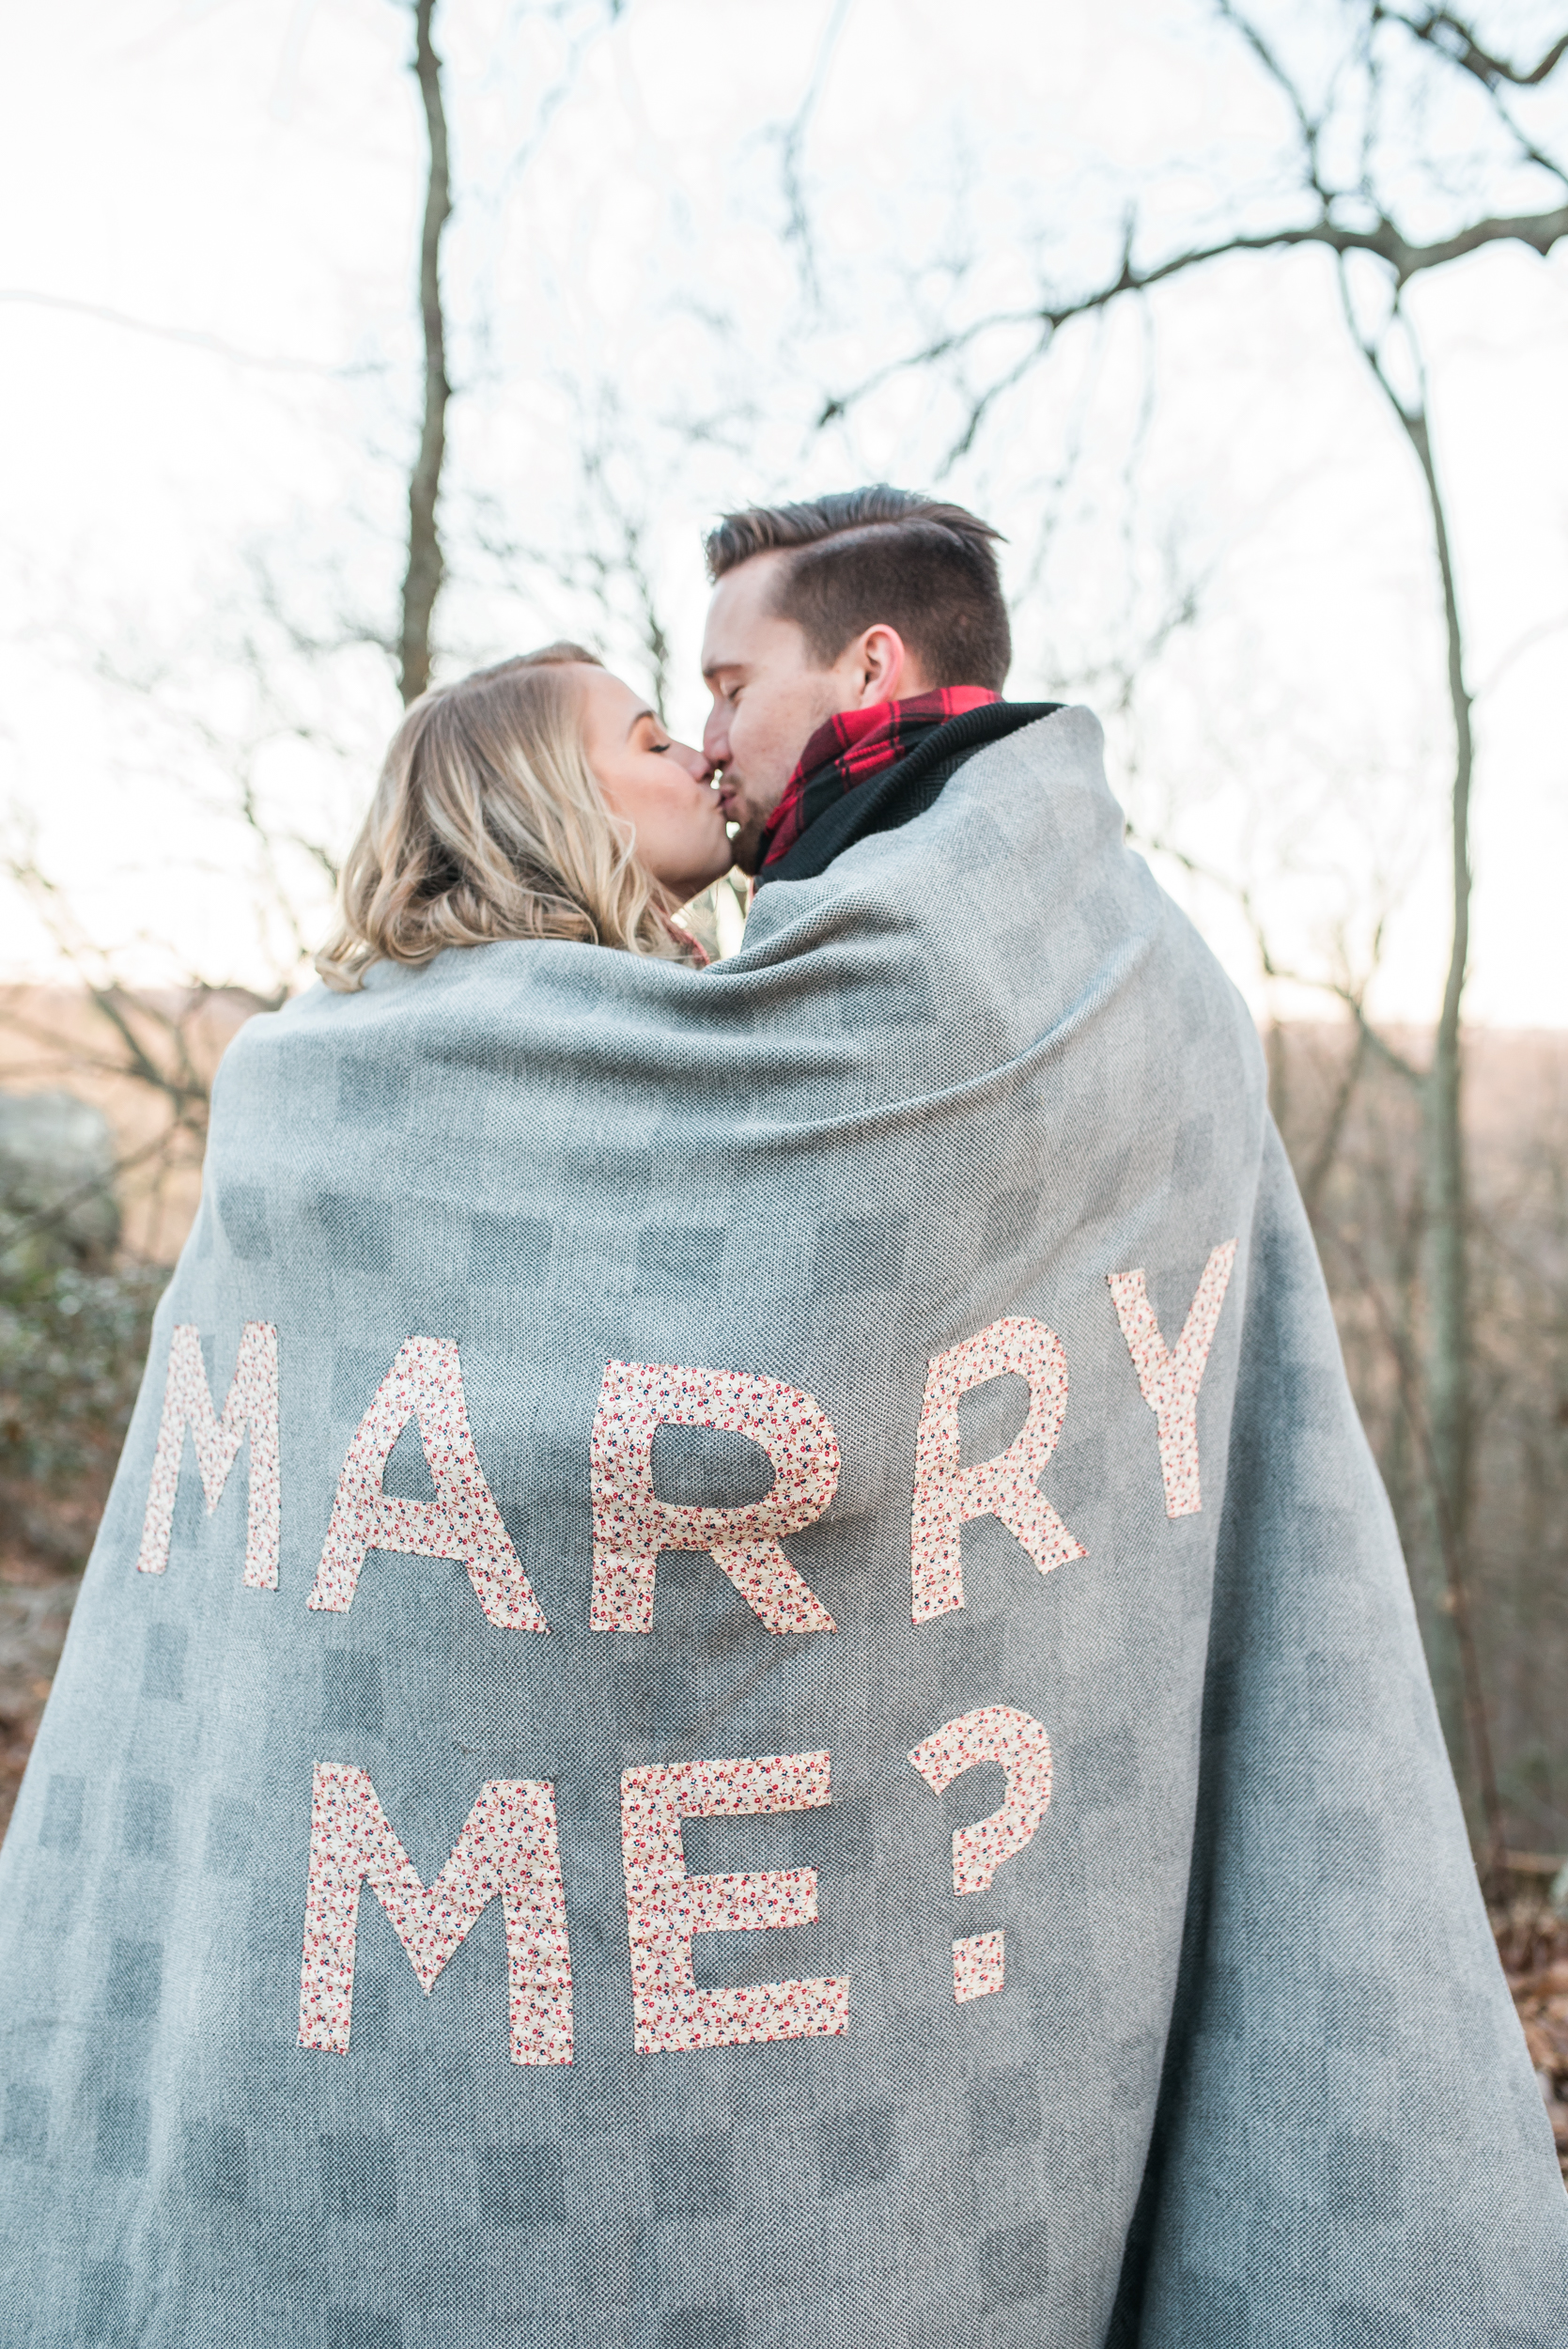 rocks-state-park-engagement-chelsea-blanch-photography-1.jpgrocks-state-park-engagement-chelsea-blanch-photography-8